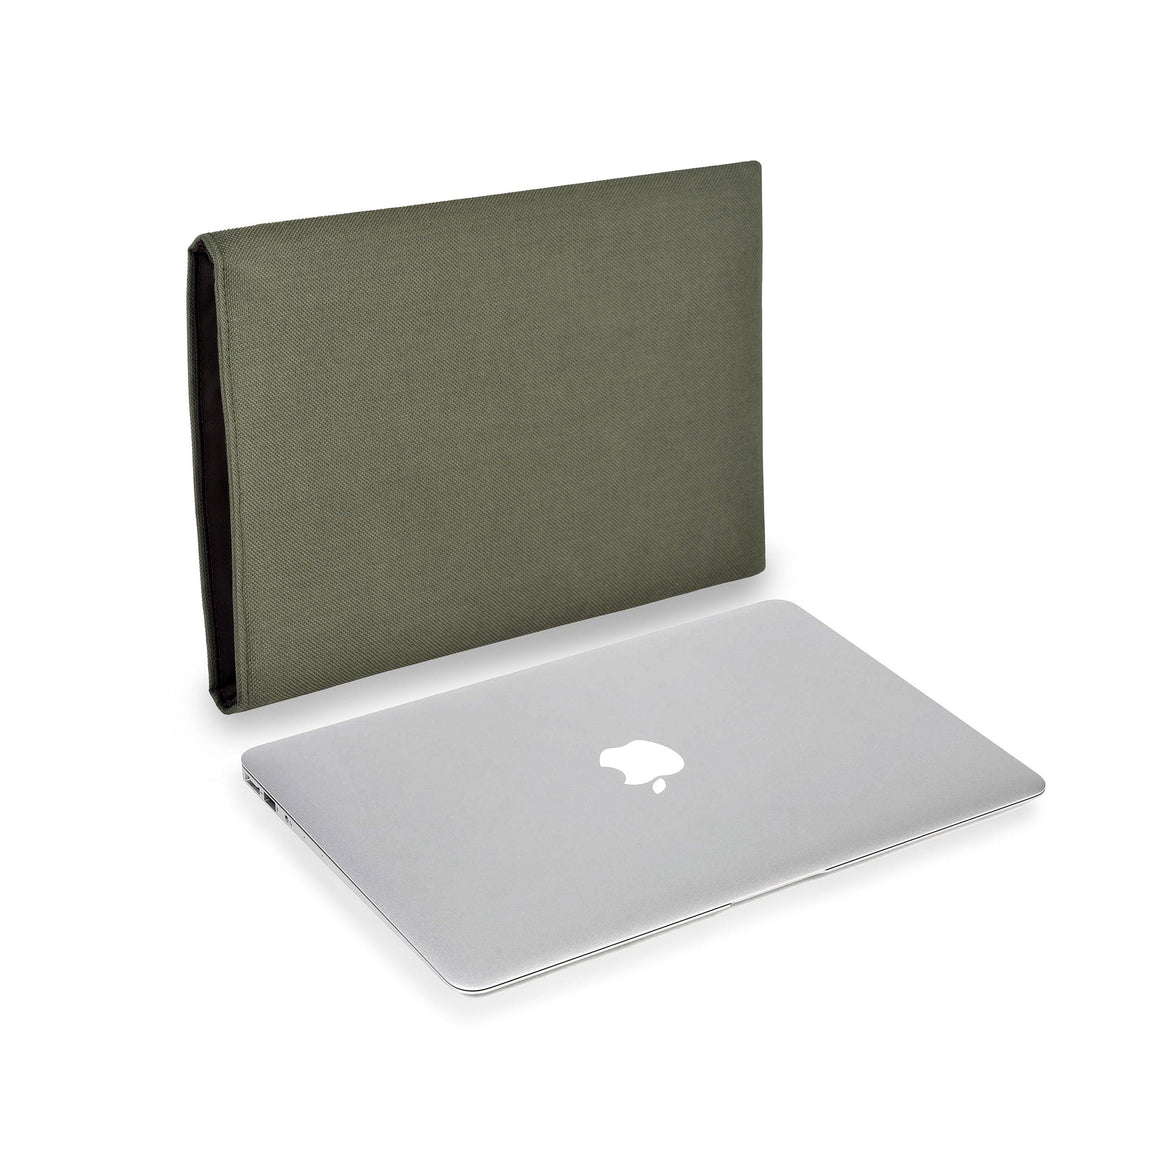 MacBook Cordura Olive Green